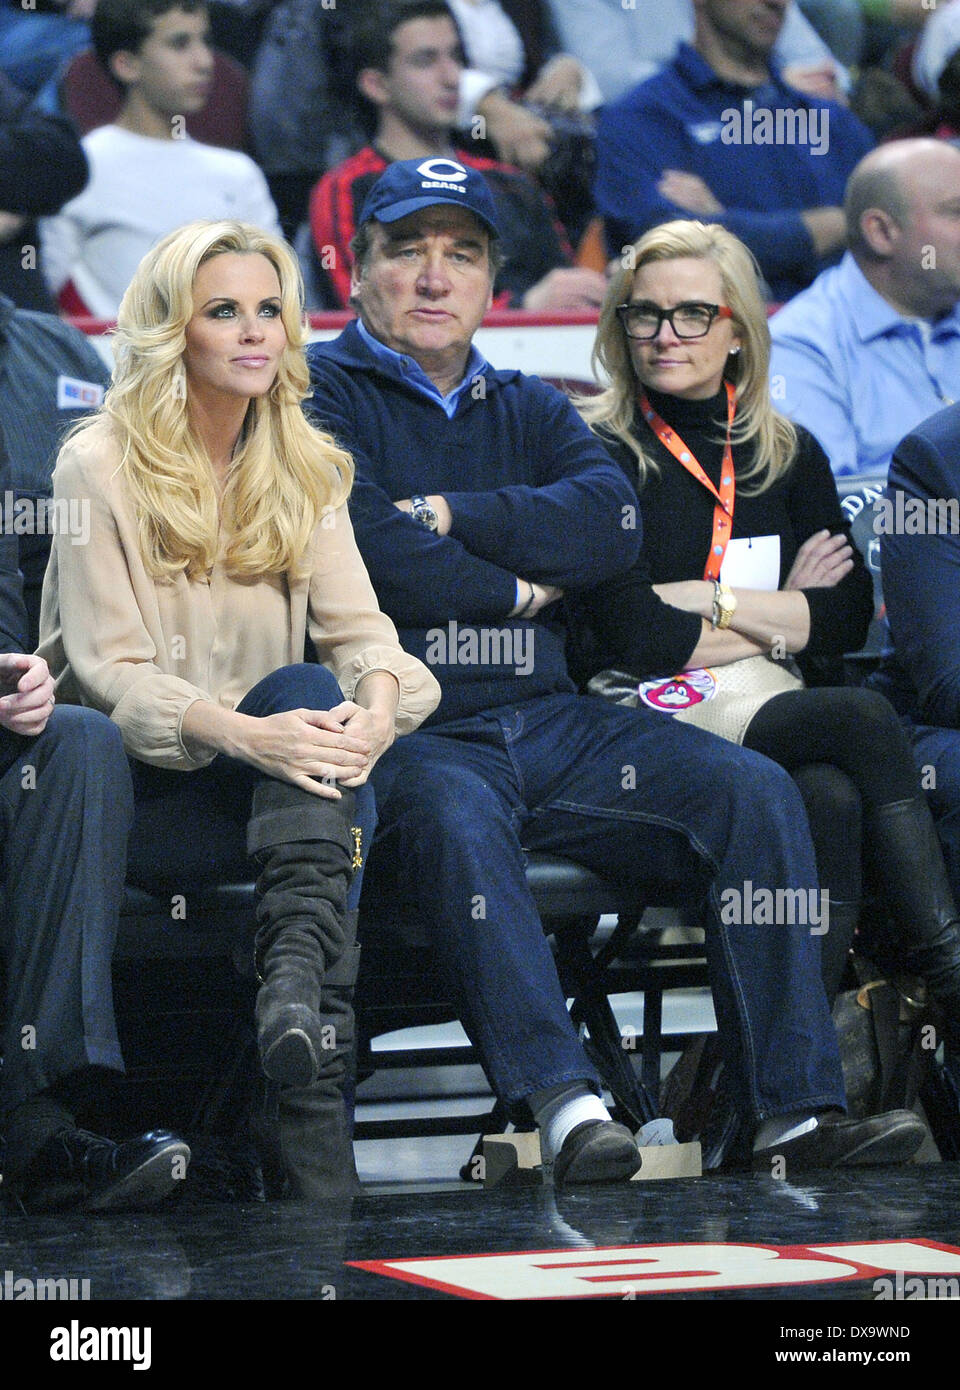 Jenny mccarthy dating jim belushi